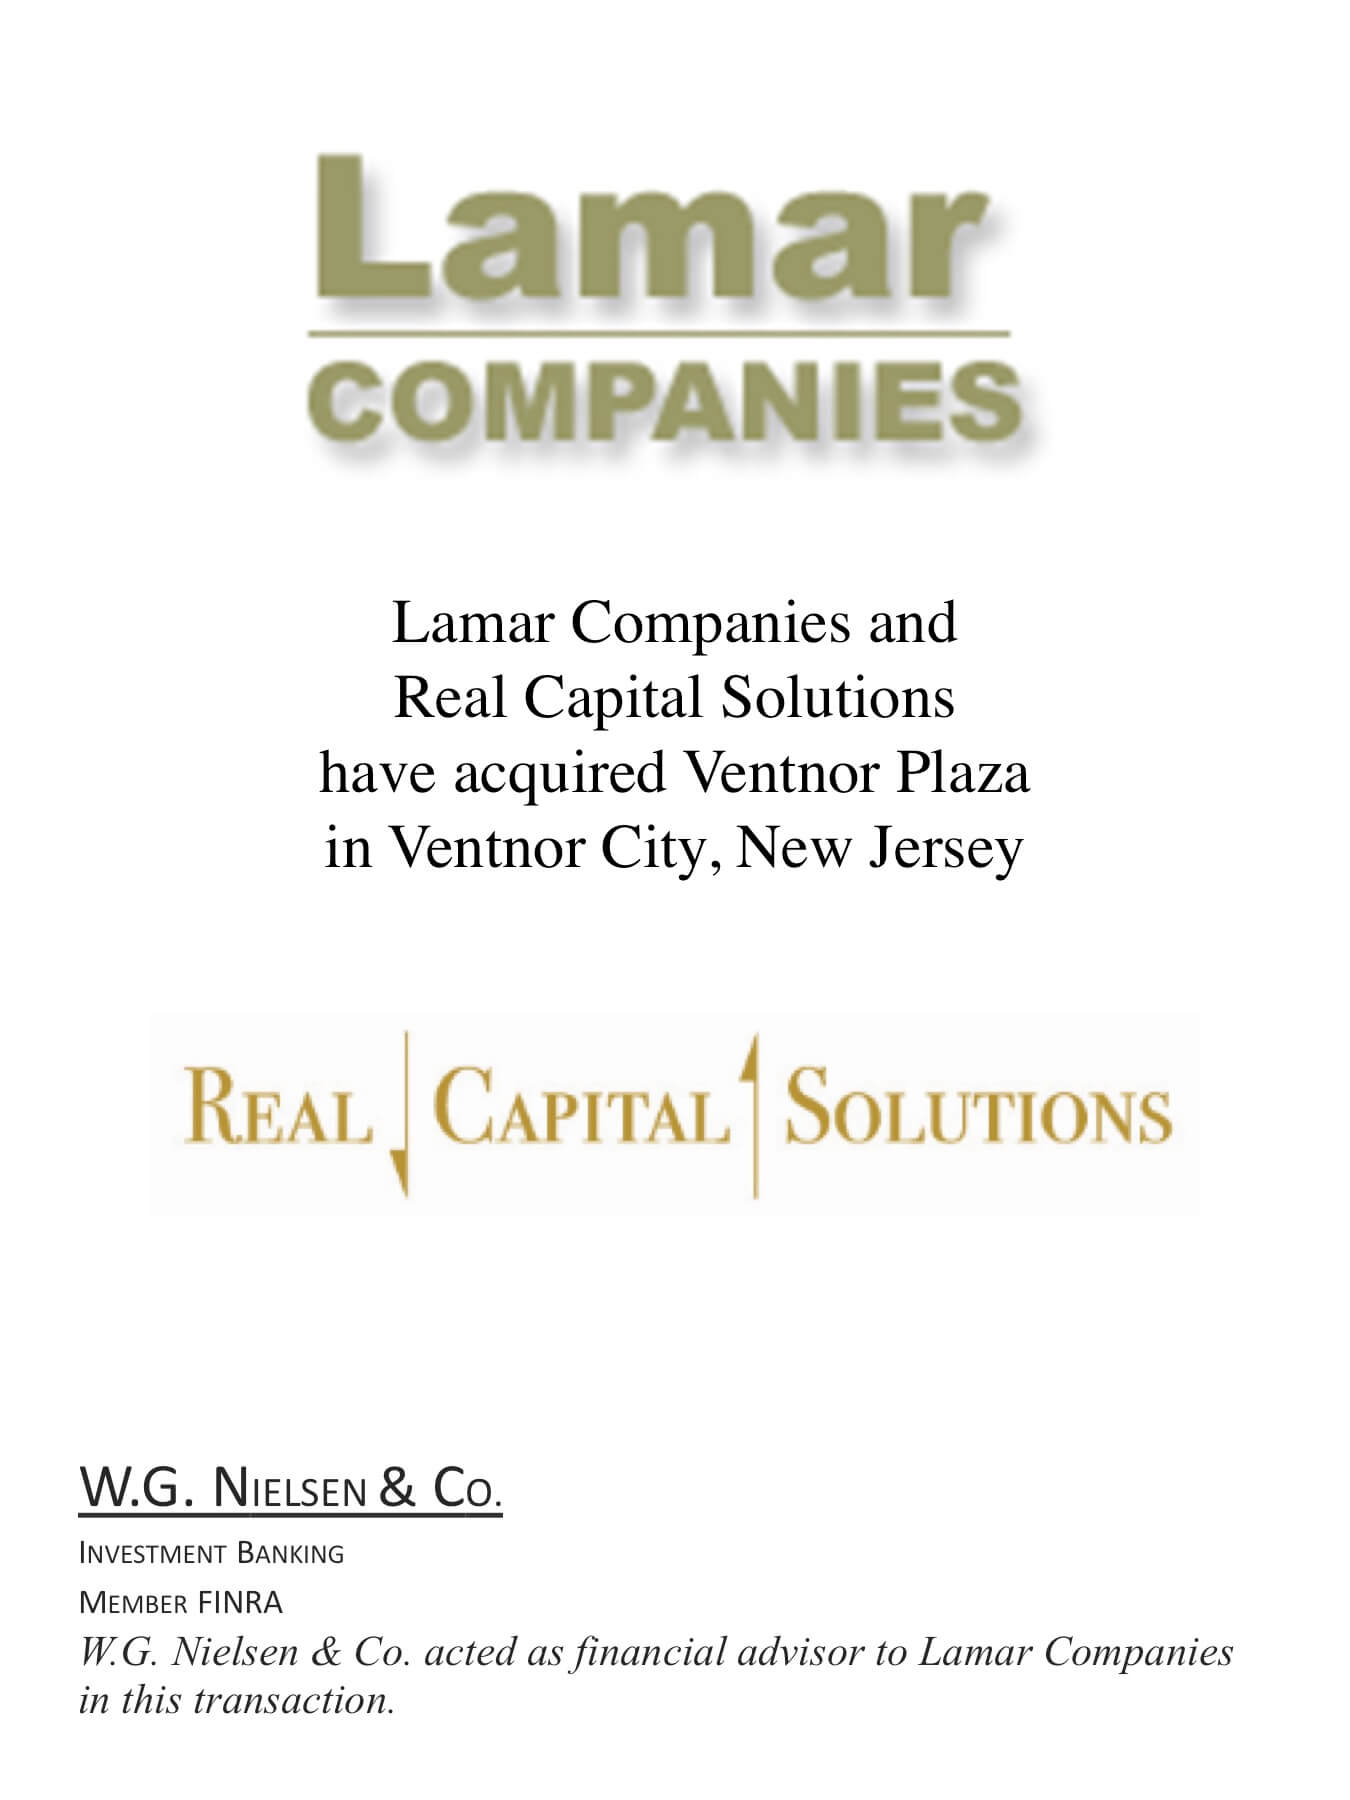 lamar companies investment banking transaction